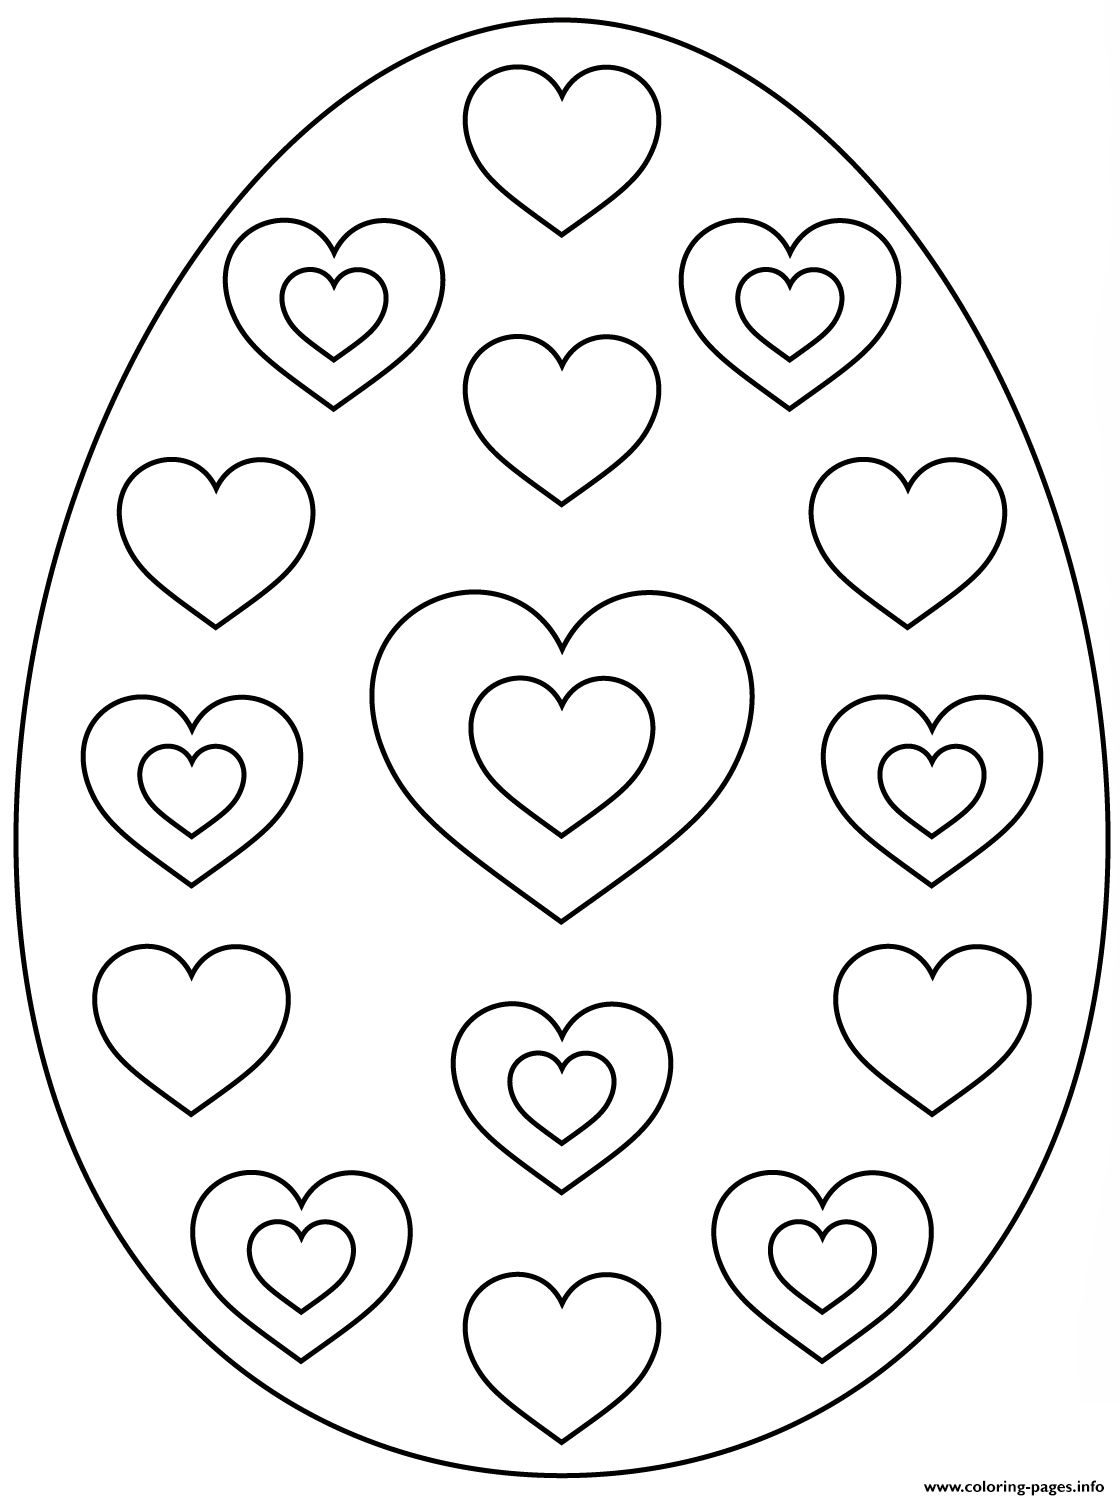 Easter Egg With Hearts Coloring Pages Printable